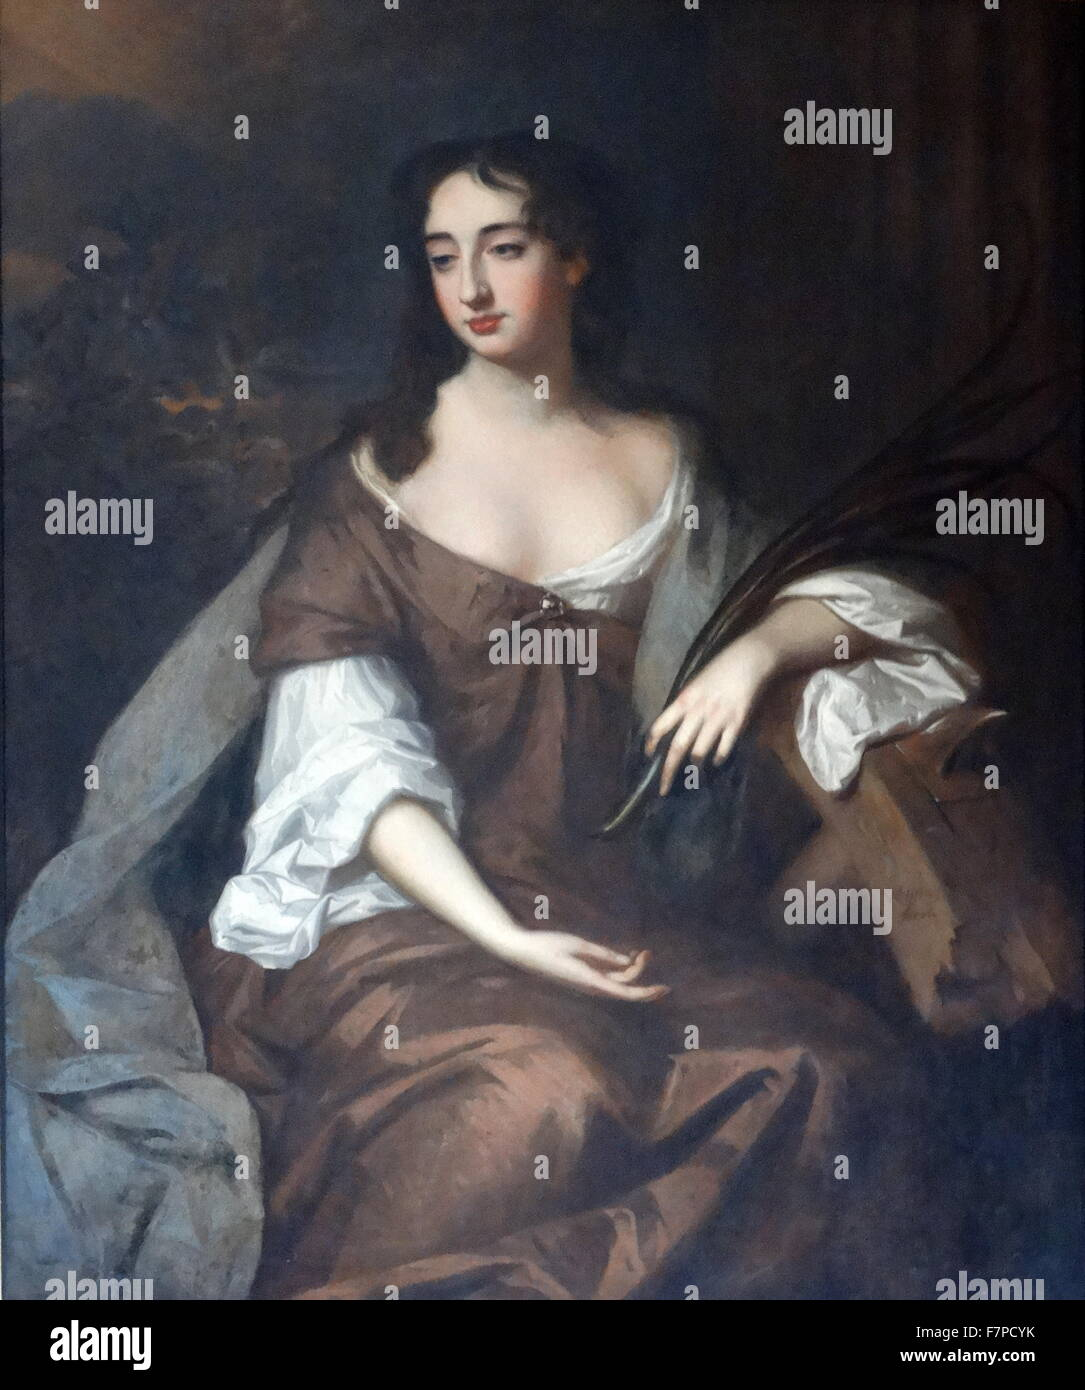 Painting titled 'A Lady as St Catherine' by Willem Wissing (1656-1687) Dutch portrait artist. Dated 17th - Stock Image